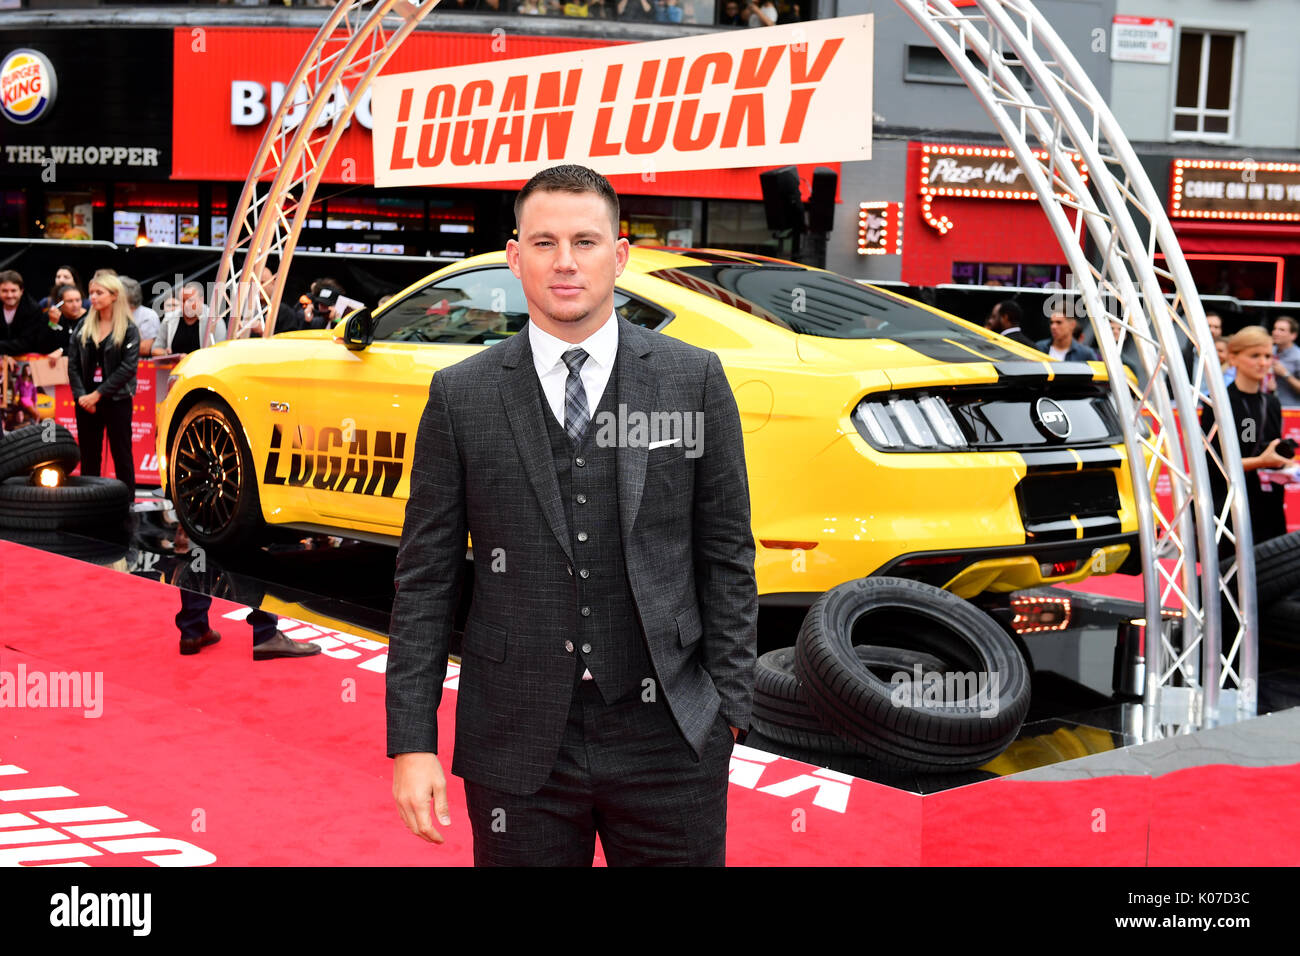 Channing Tatum Teilnahme an der Logan Lucky UK Premiere auf der Vue West End in Leicester Square, London statt. Stockfoto